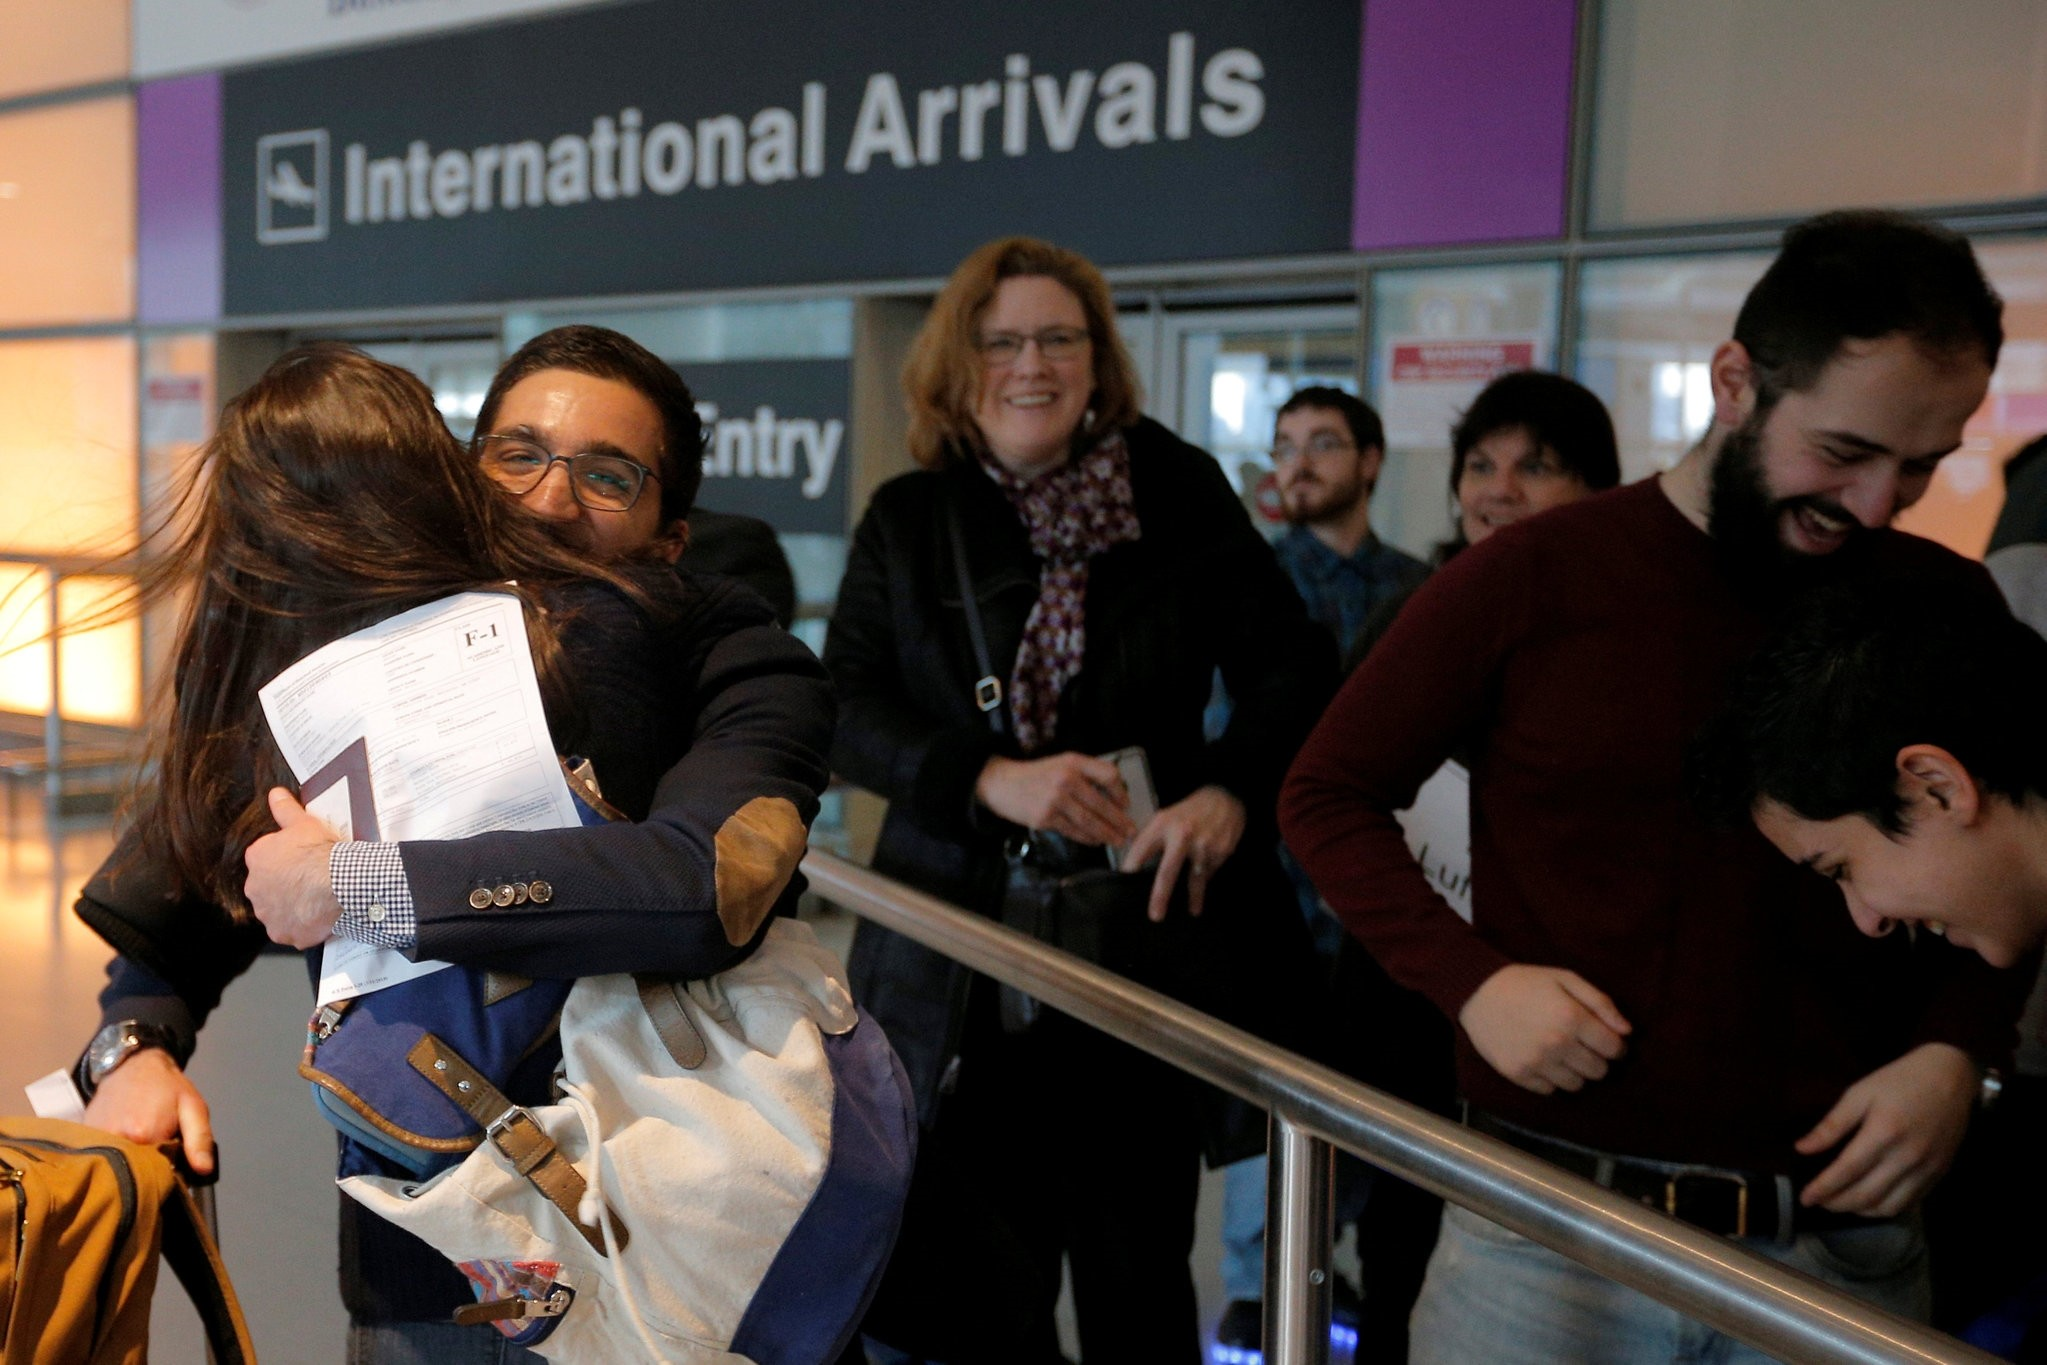 Behnam Partopour, a Worcester Polytechnic Institute (WPI) student from Iran, is greeted by his sister Bahar (L) at Logan Airport. (Reuters Photo)